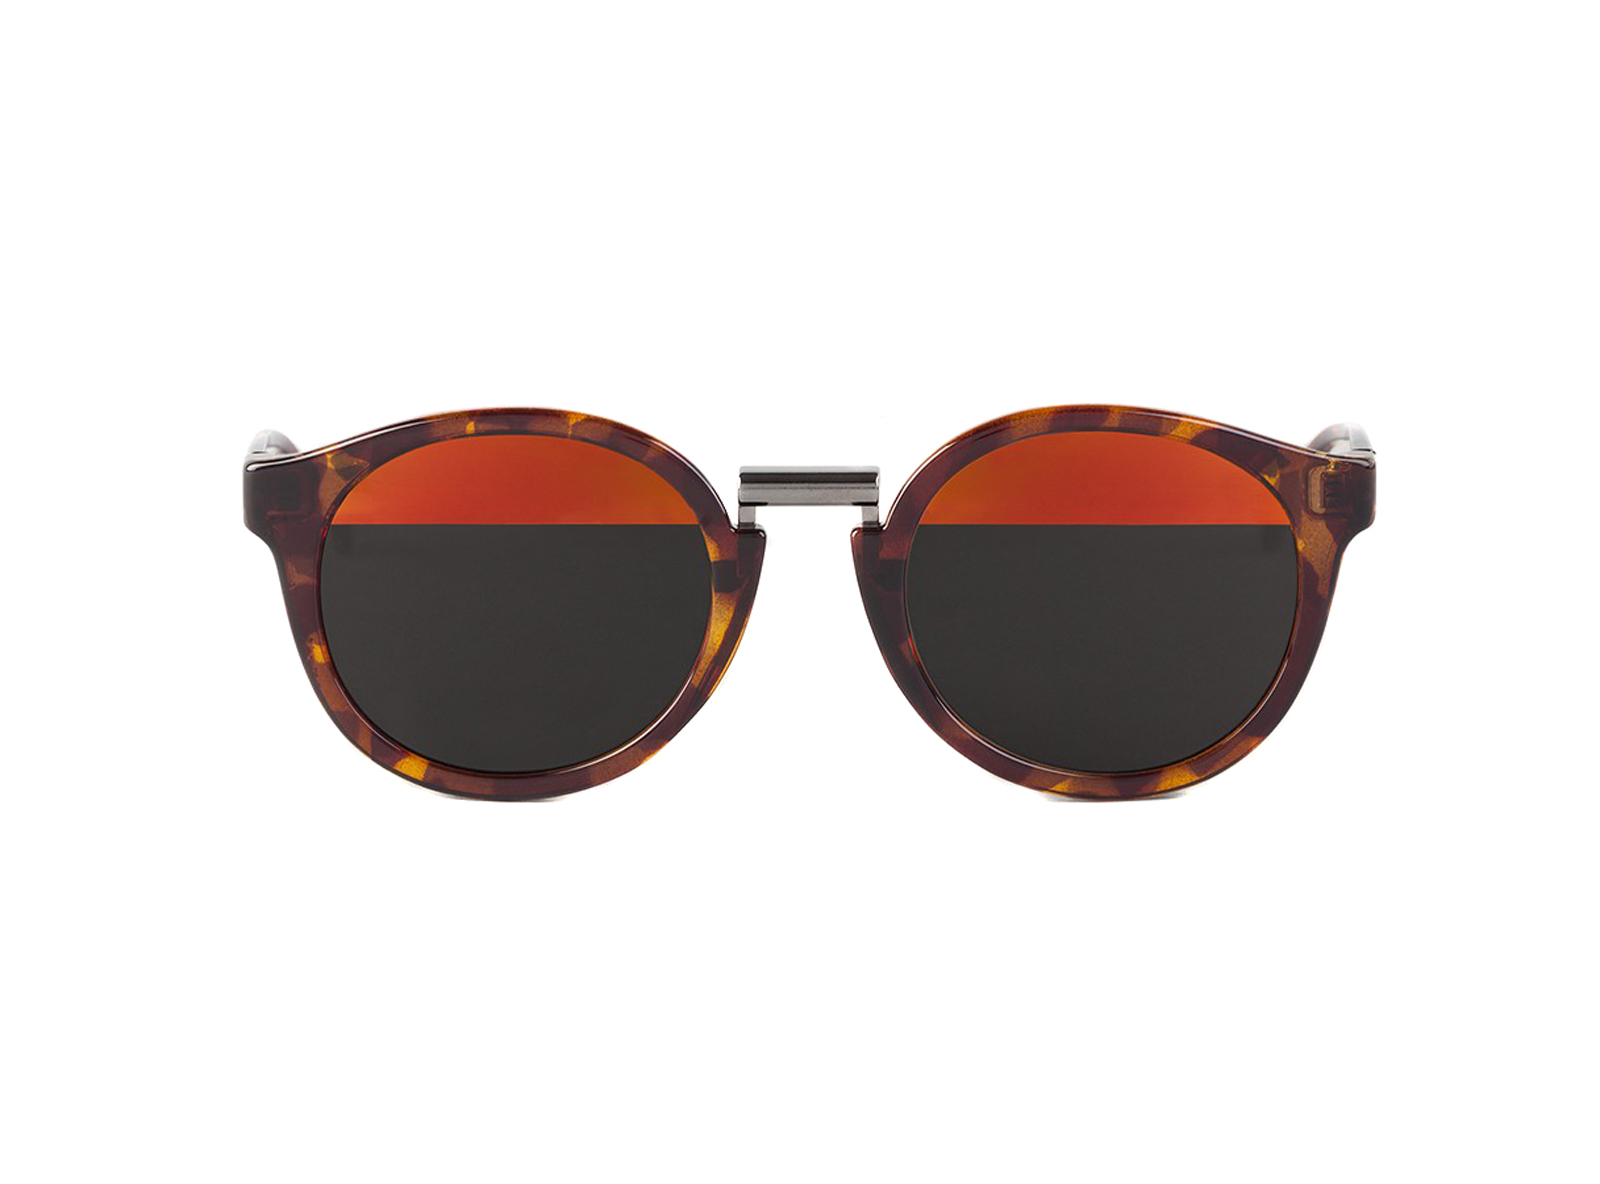 EU-27-Vintage-Tortoise-Fitzroy-with-bicolor-red-lenses